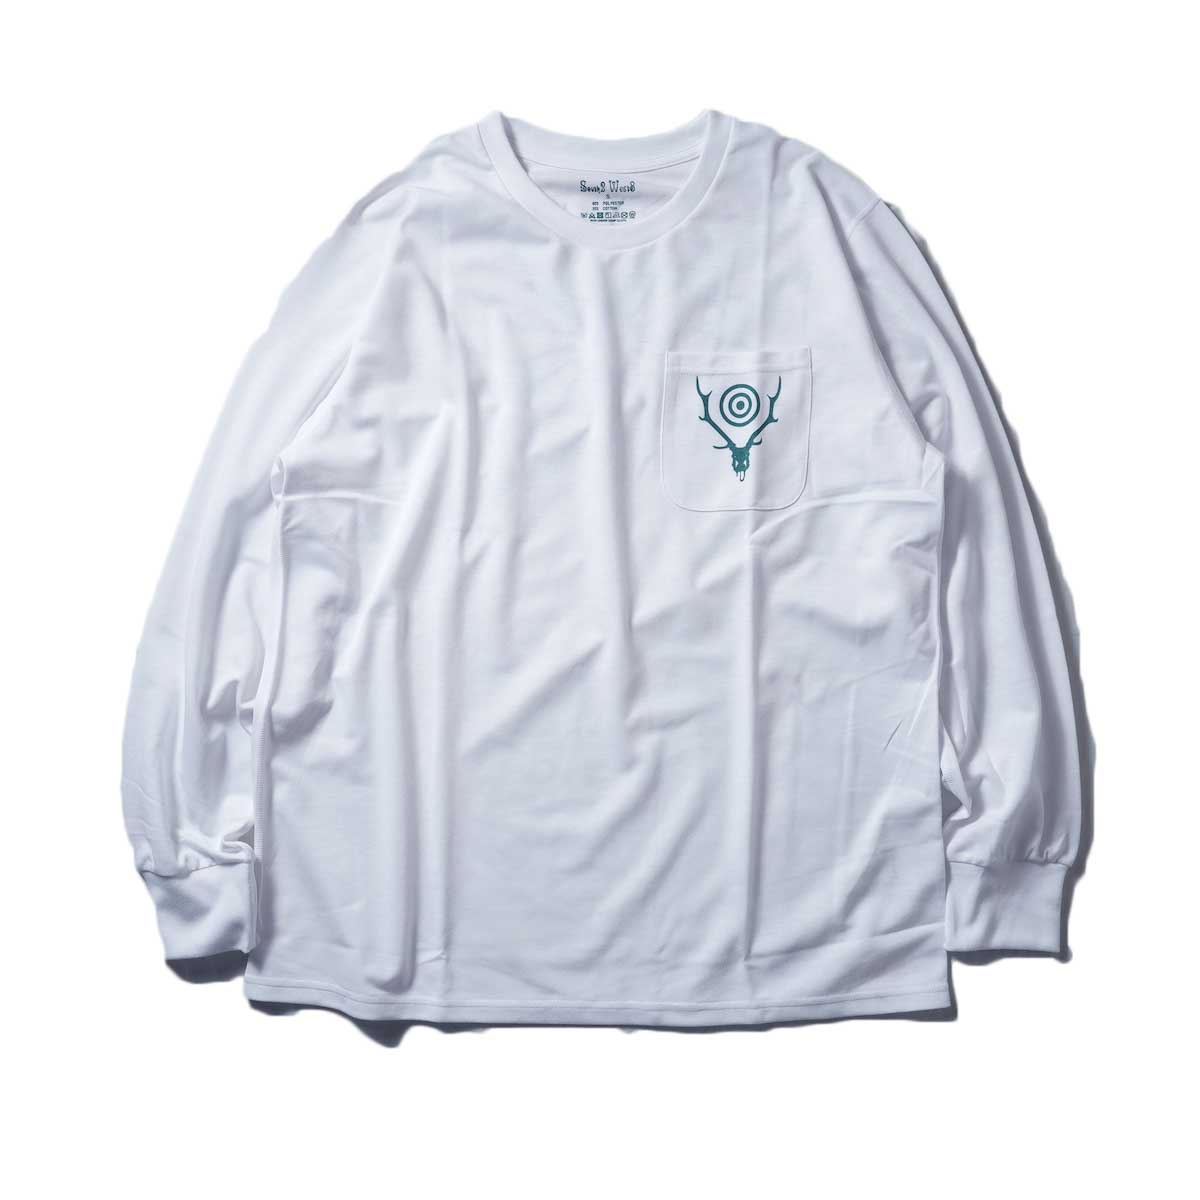 South2 West8 / L/S Round Pocket Tee -Circle Horn (White)